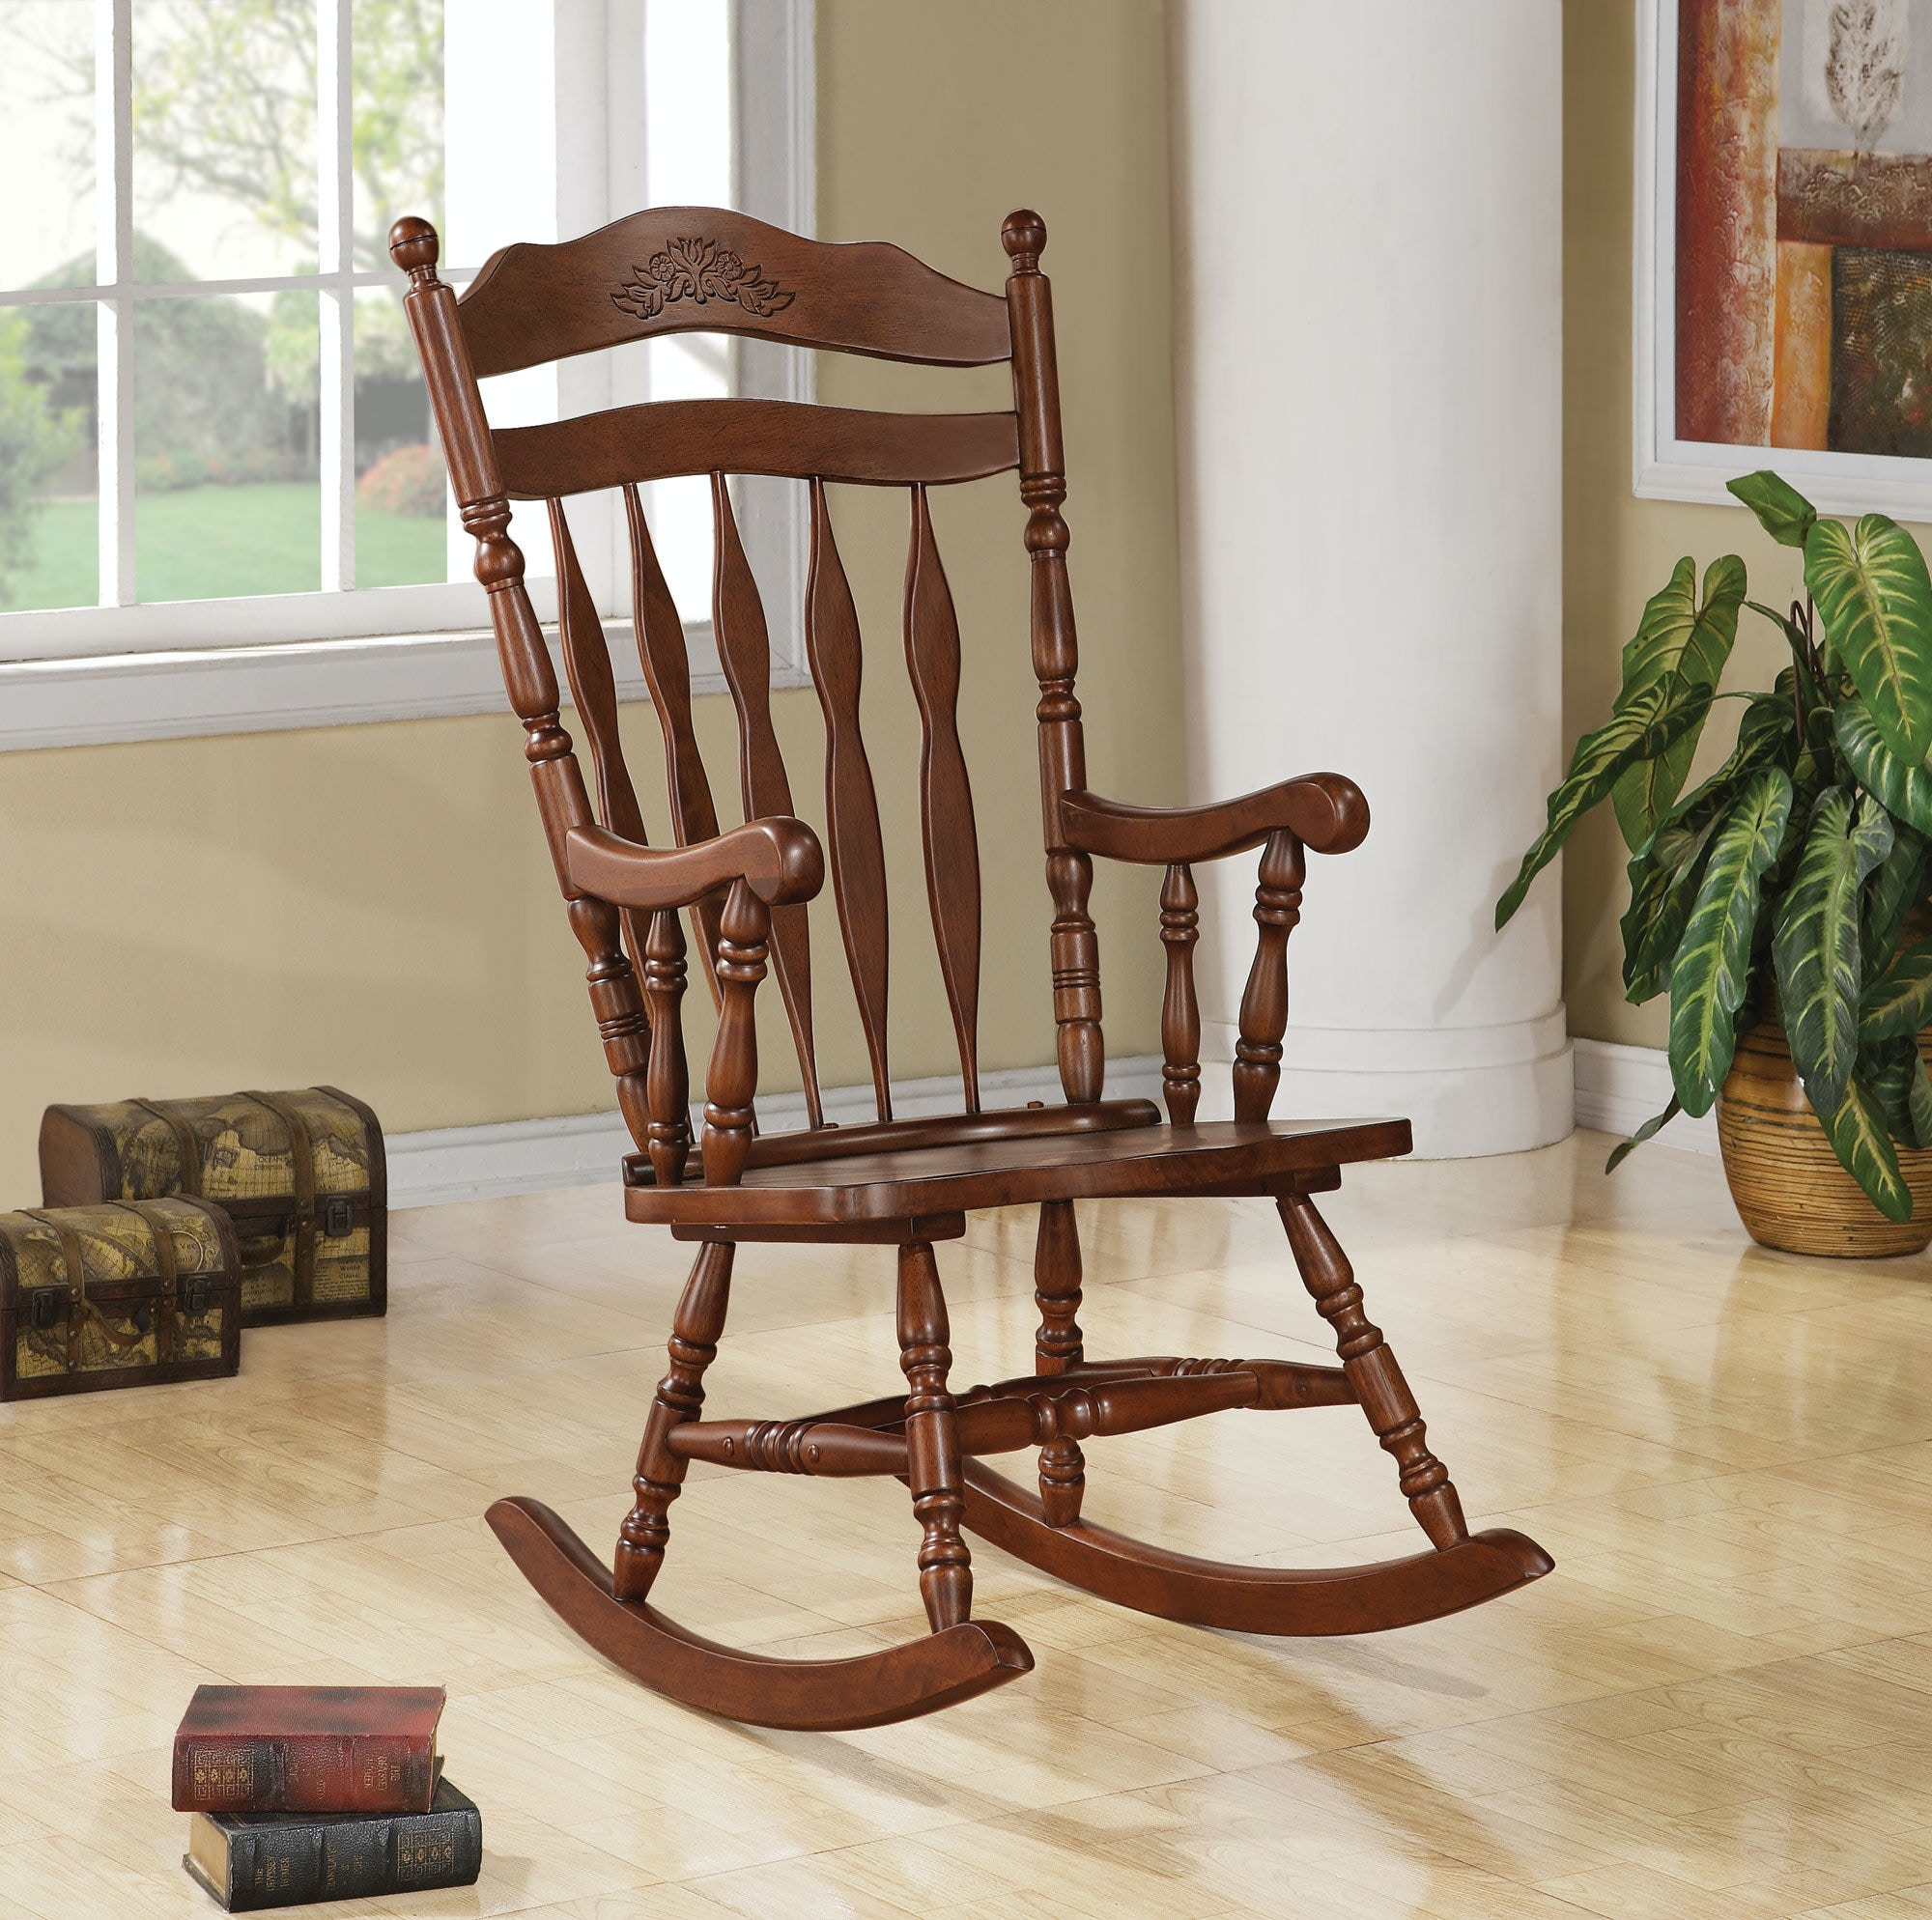 Coaster Living Room Rocking Chair 600187   Turner Furniture Company   Avon  Park And Sebring, FL